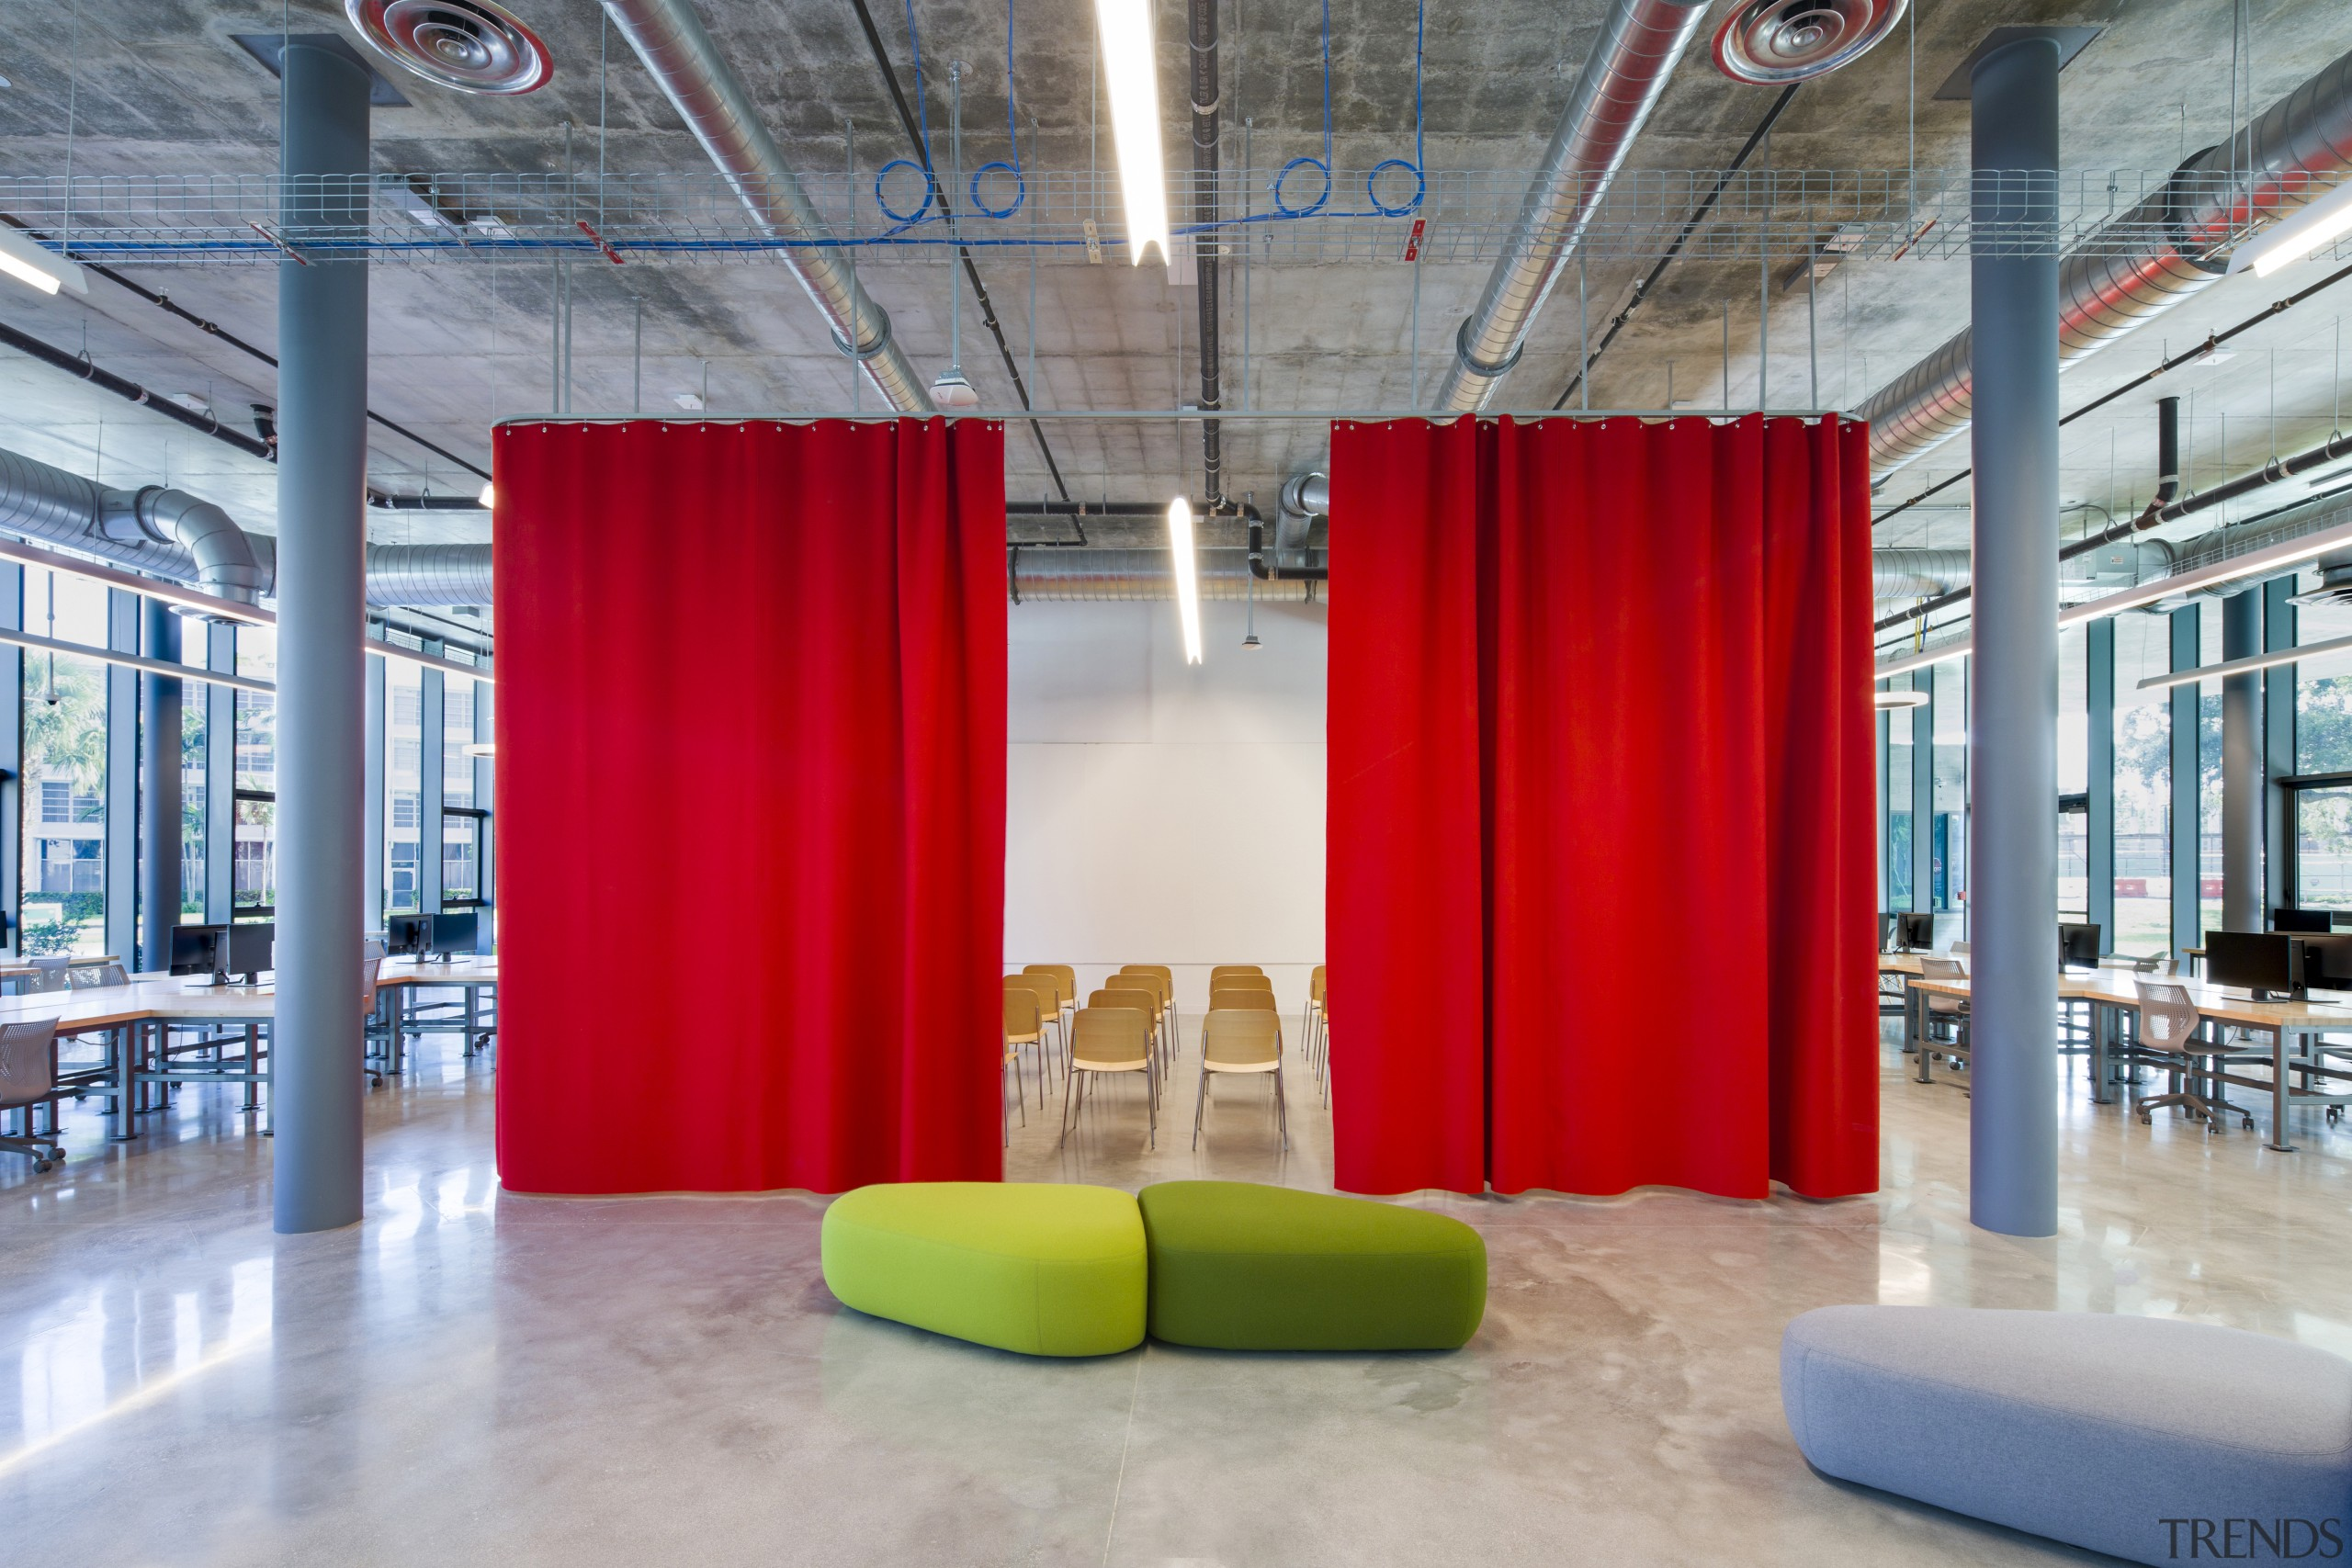 Curtains in the Thomas P Murphy Design Studio architecture, building, commercial building, design, floor, flooring, furniture, interior design, lobby, office, room, wall, University, archtecture studio